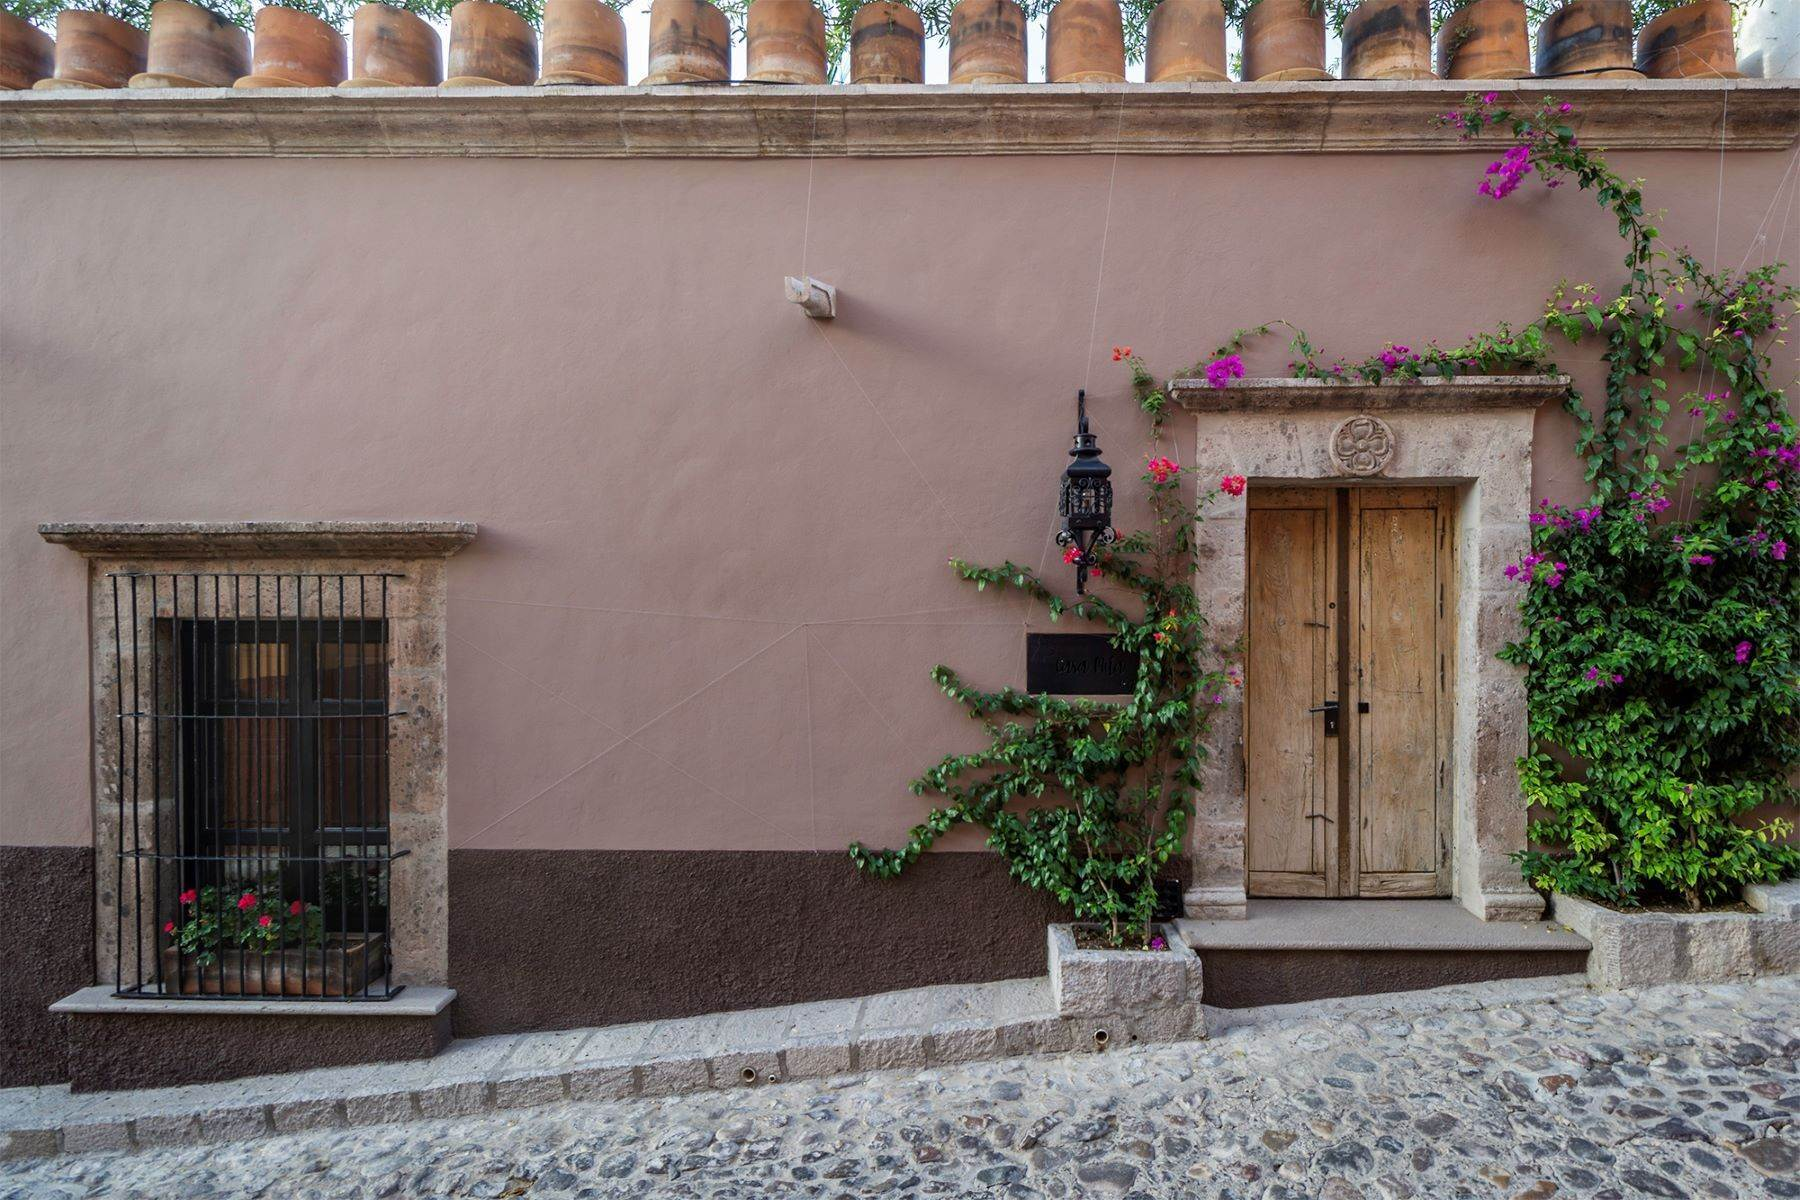 Single Family Homes for Sale at Casa Mila Garita 2 San Miguel De Allende, Guanajuato 37700 Mexico